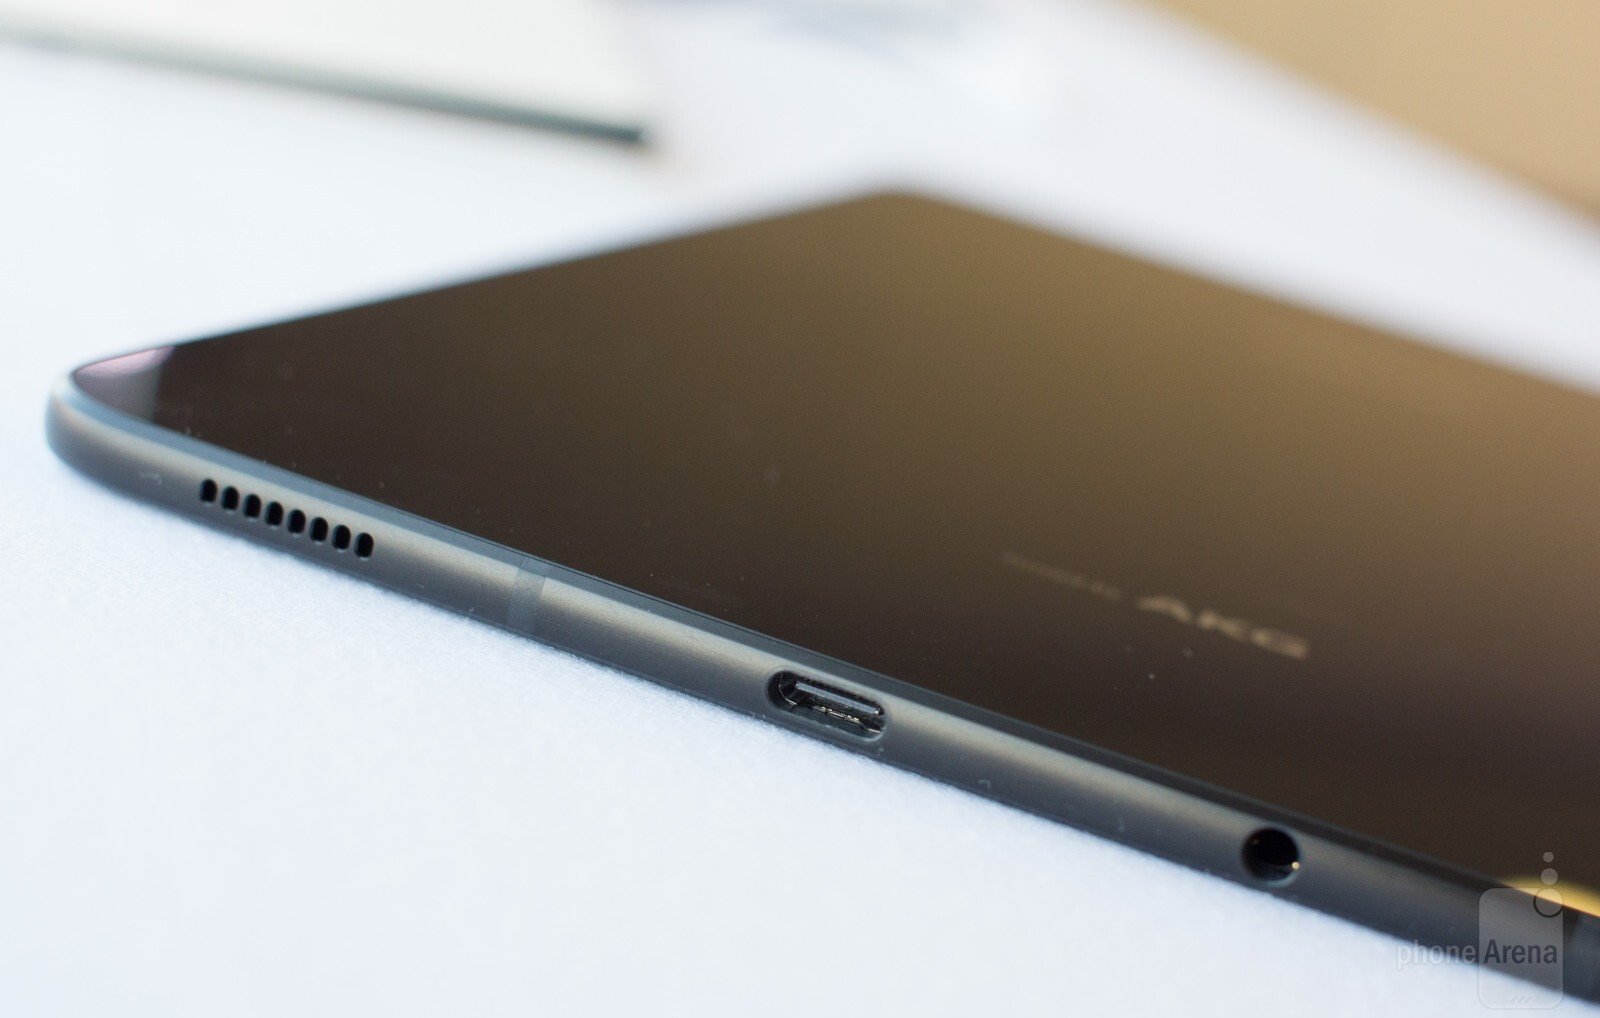 outlet store 25619 5c200 Samsung Galaxy Tab S3 hands-on: A better tablet than we expected ...